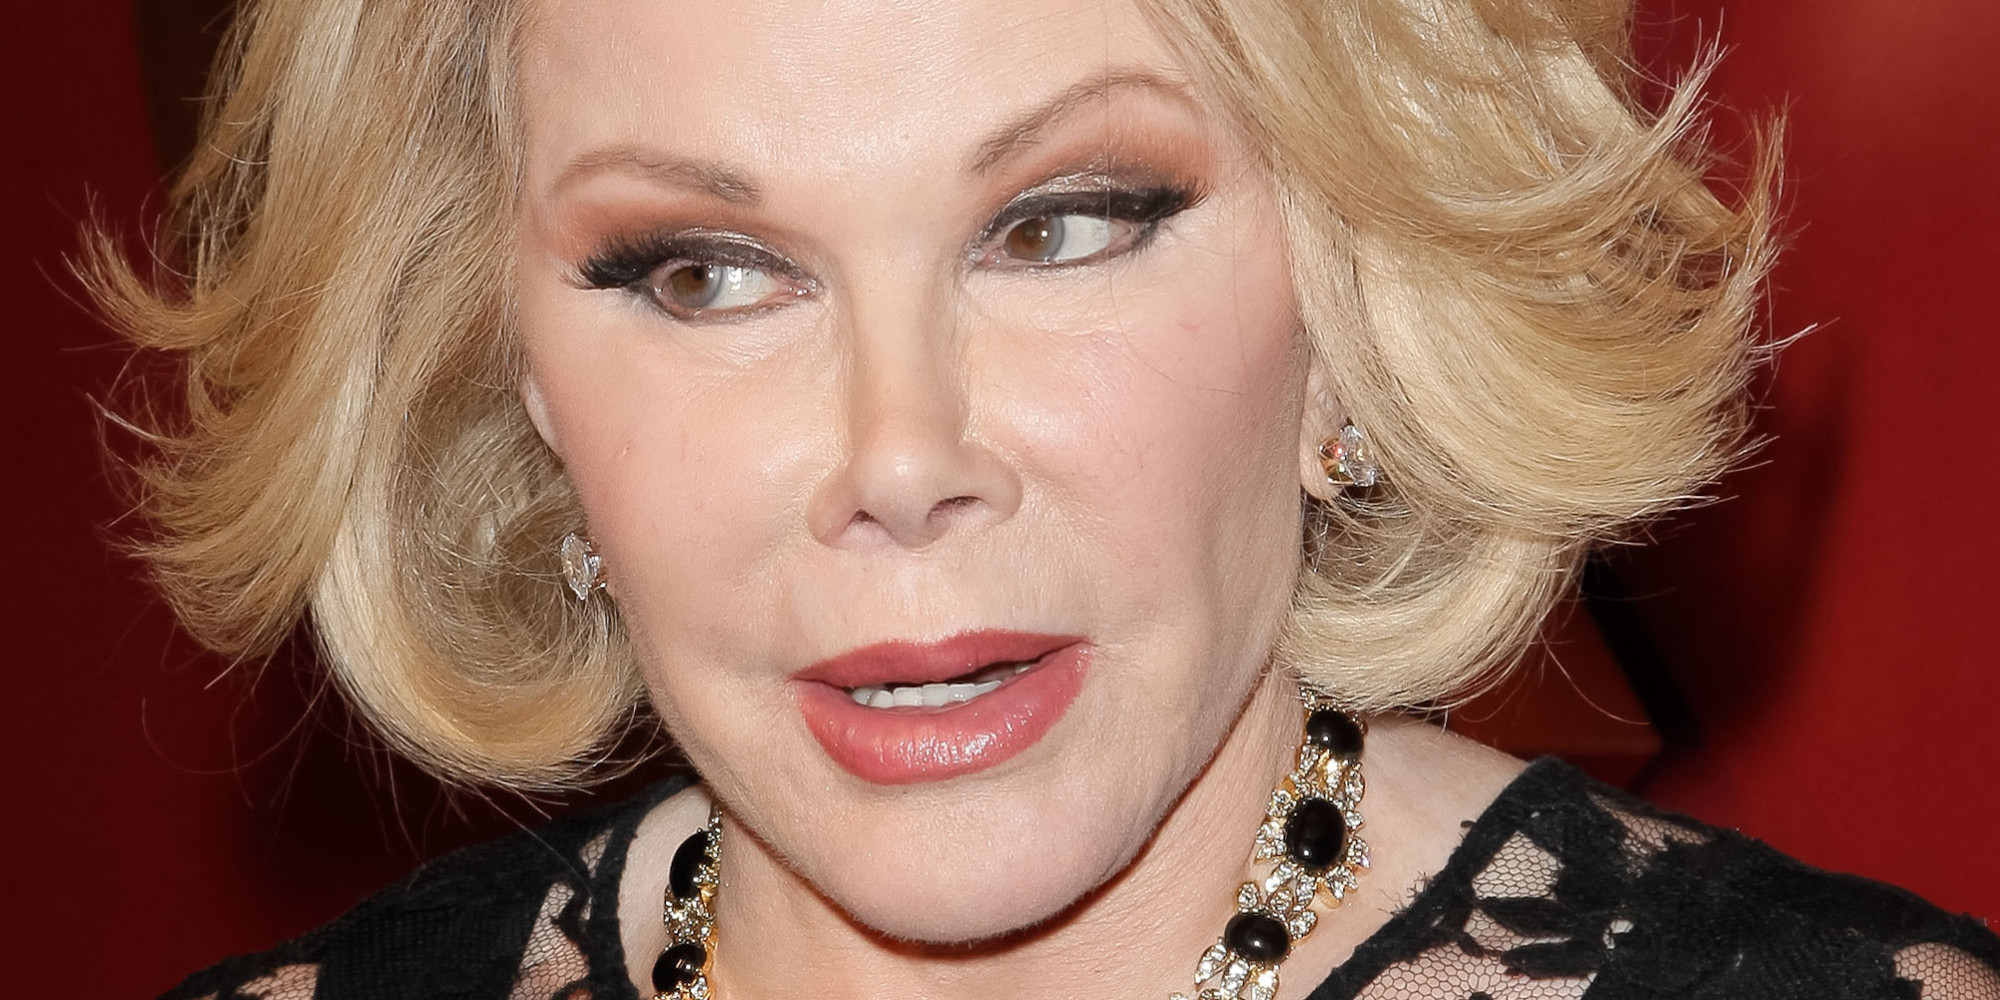 Charming Joan rivers nude sex state